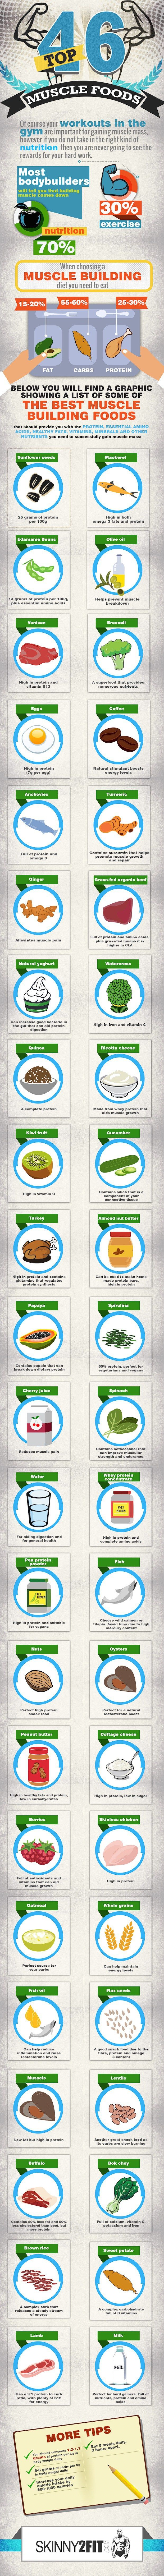 Muscle and Strength Gain: 46 Top Foods [by Skinny2Fit -- via #tipsographic]. More at tipsographic.com